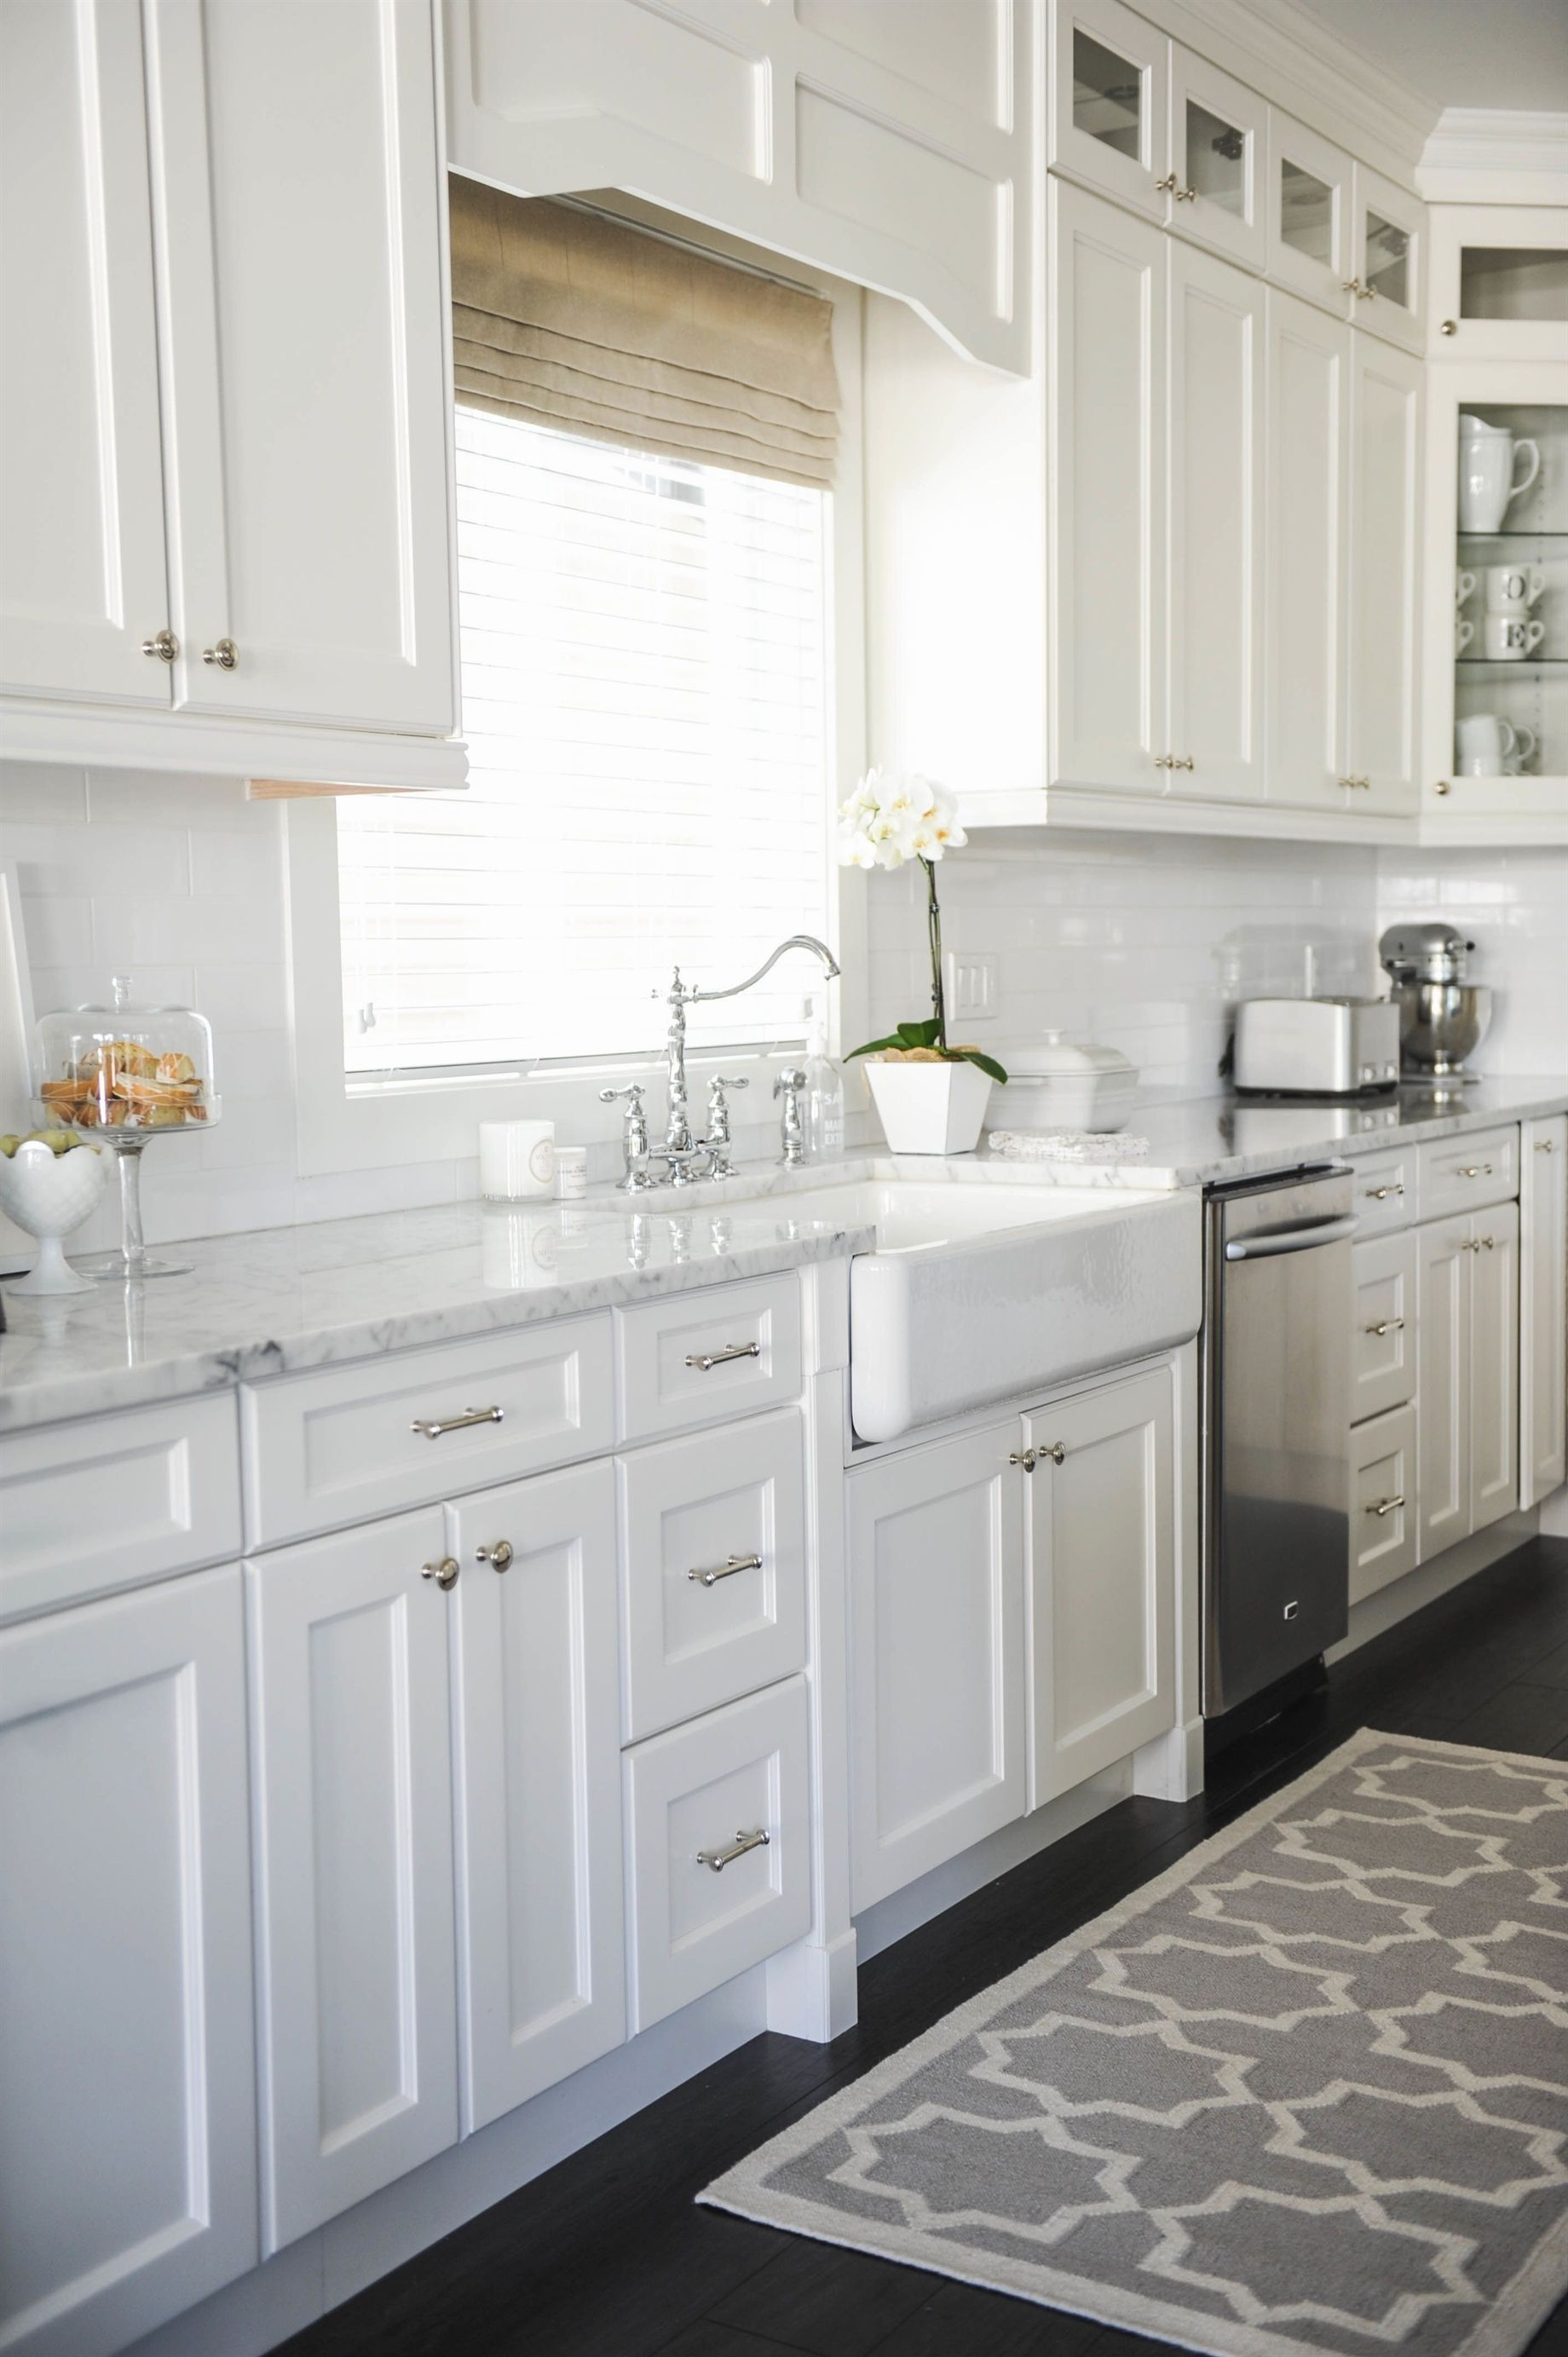 Bring your kitchen cabinets to life with these solid cabinet knobs